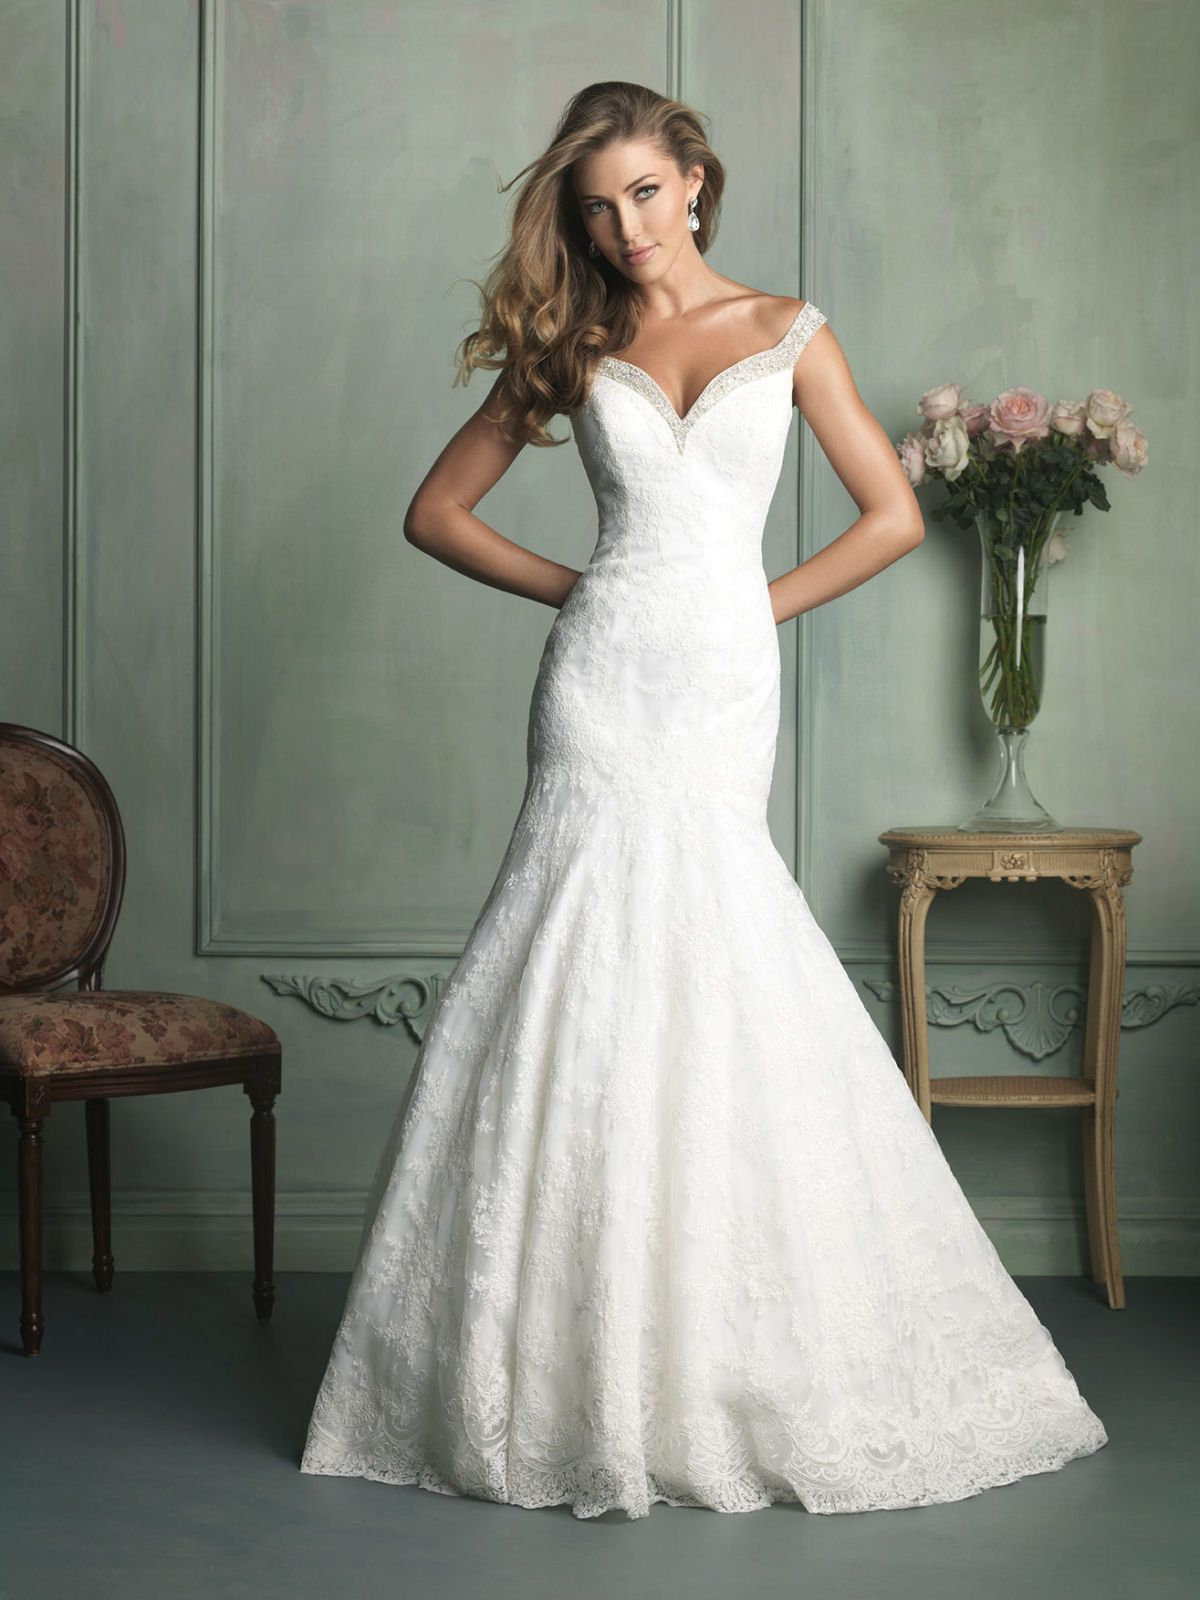 9111 from Allure at Bellasposa Bridal & Photography 11450 4th Street ...